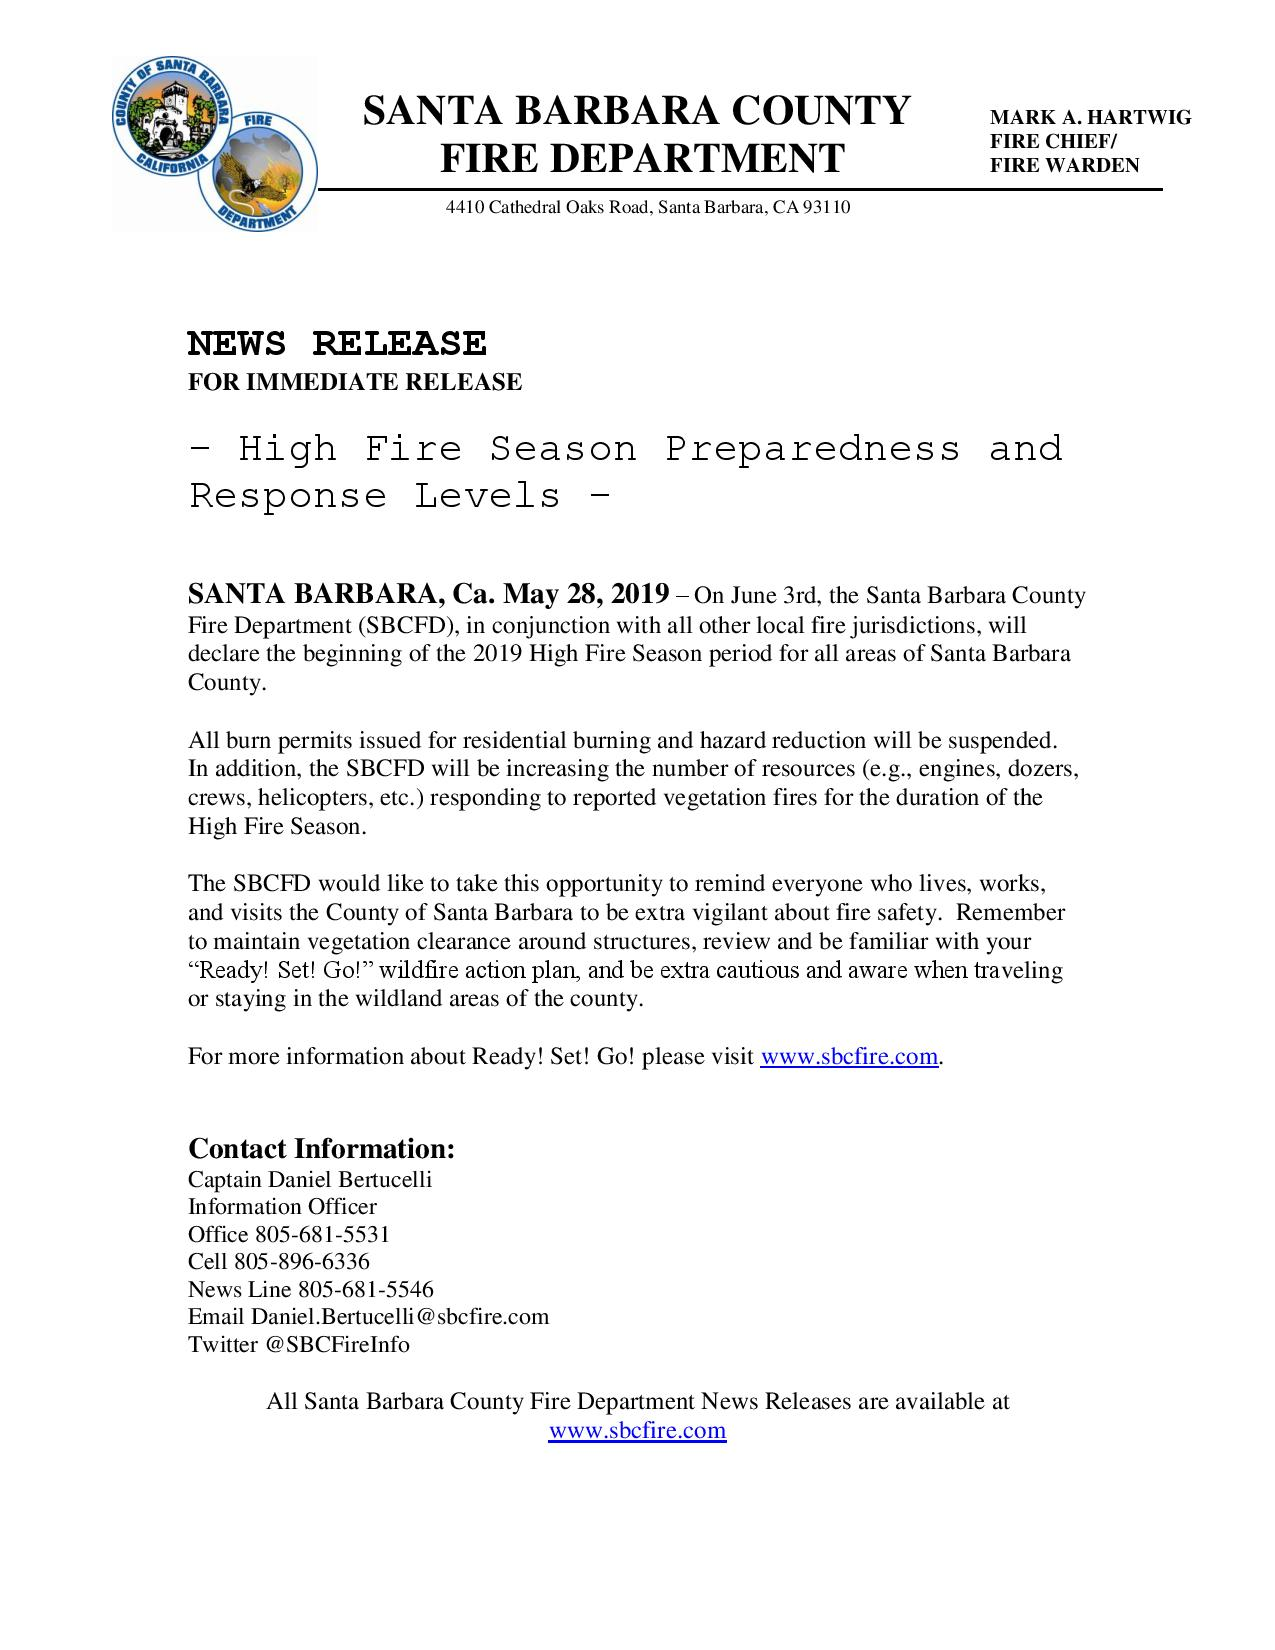 High Fire Season Preparedness and Response Levels